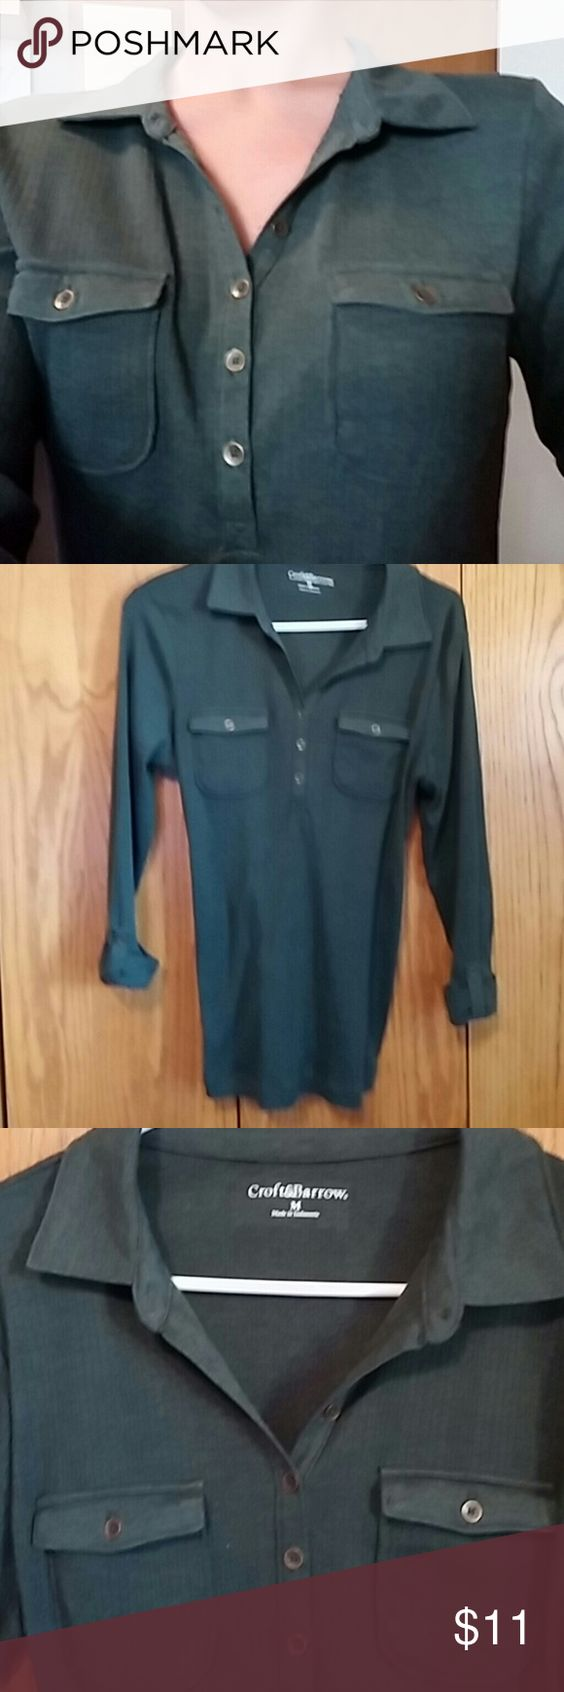 Croft & Barrows top with collar Croft & Barrows 3/4 length sweater top with a collar. A beautiful forest green and very soft. New never worn. croft & barrow Tops